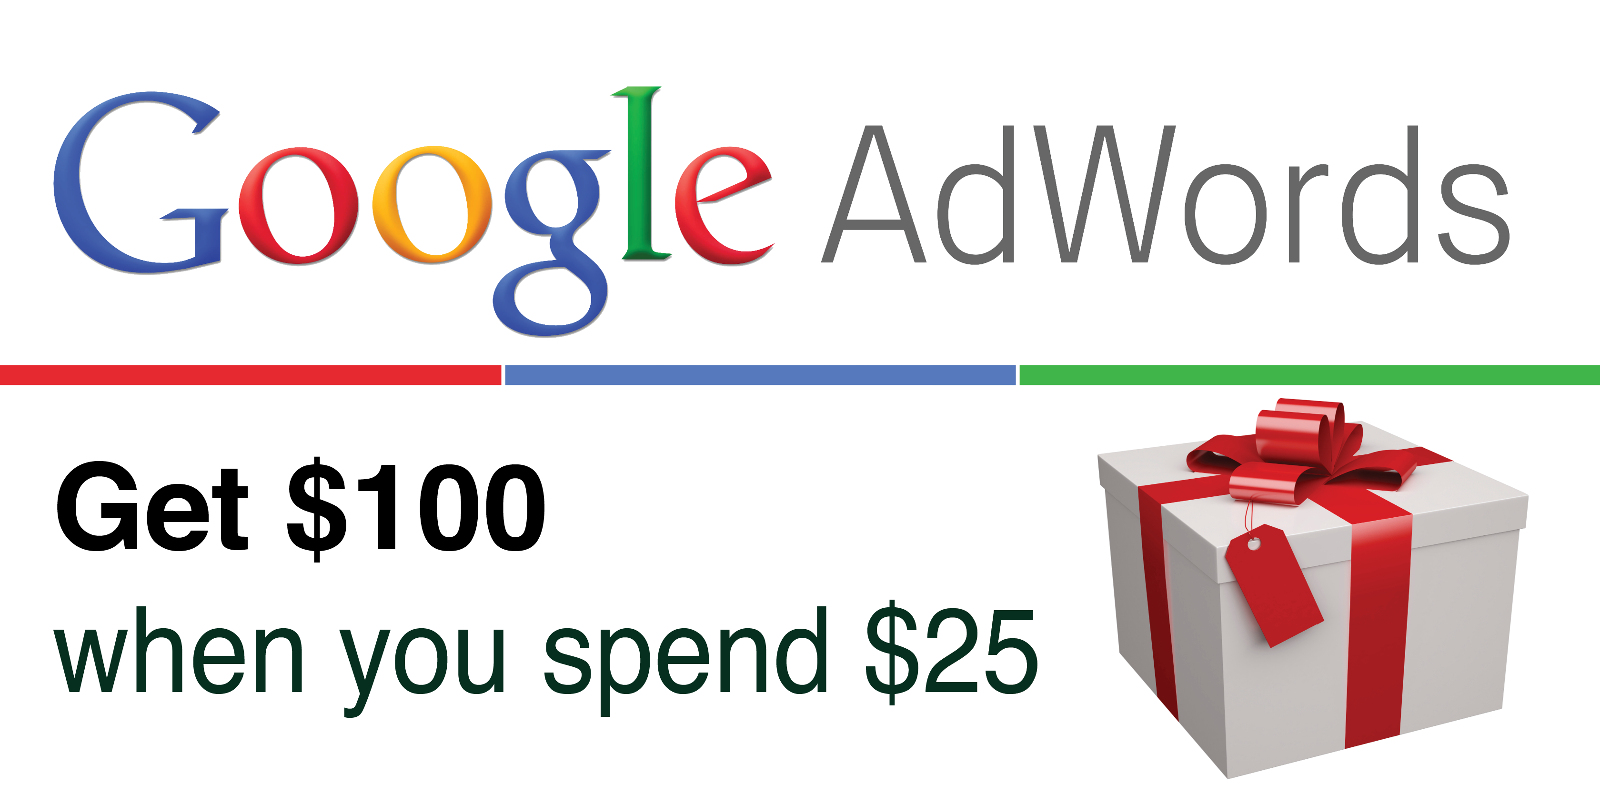 Free Google Advertising with any unlimited web hosting plan